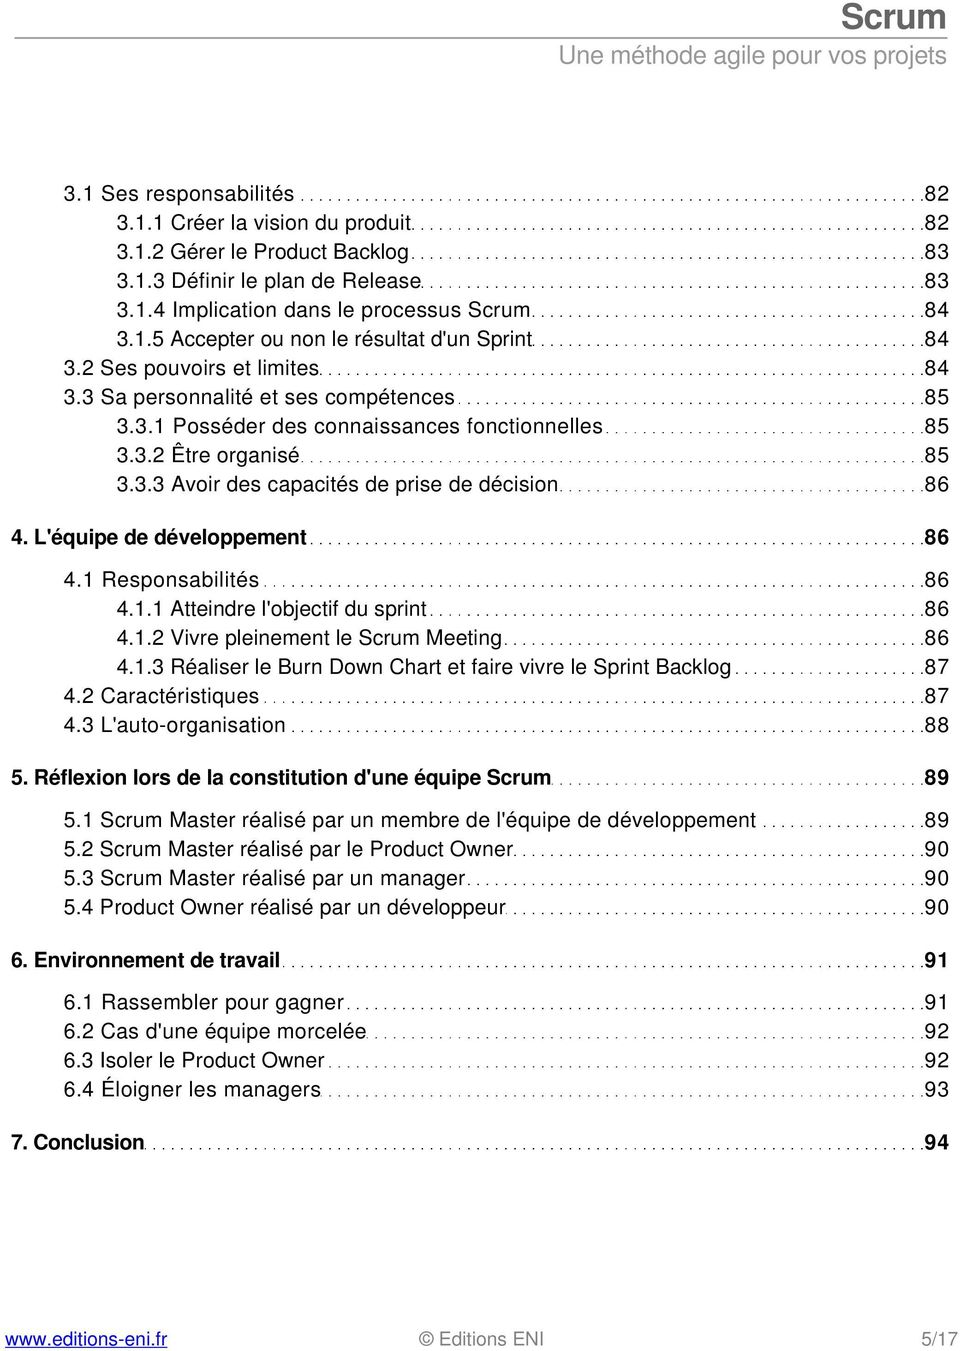 L'équipe de développement 86 4.1 Responsabilités 86 4.1.1 Atteindre l'objectif du sprint 86 4.1.2 Vivre pleinement le Scrum Meeting 86 4.1.3 Réaliser le Burn Down Chart et faire vivre le Sprint Backlog 87 4.